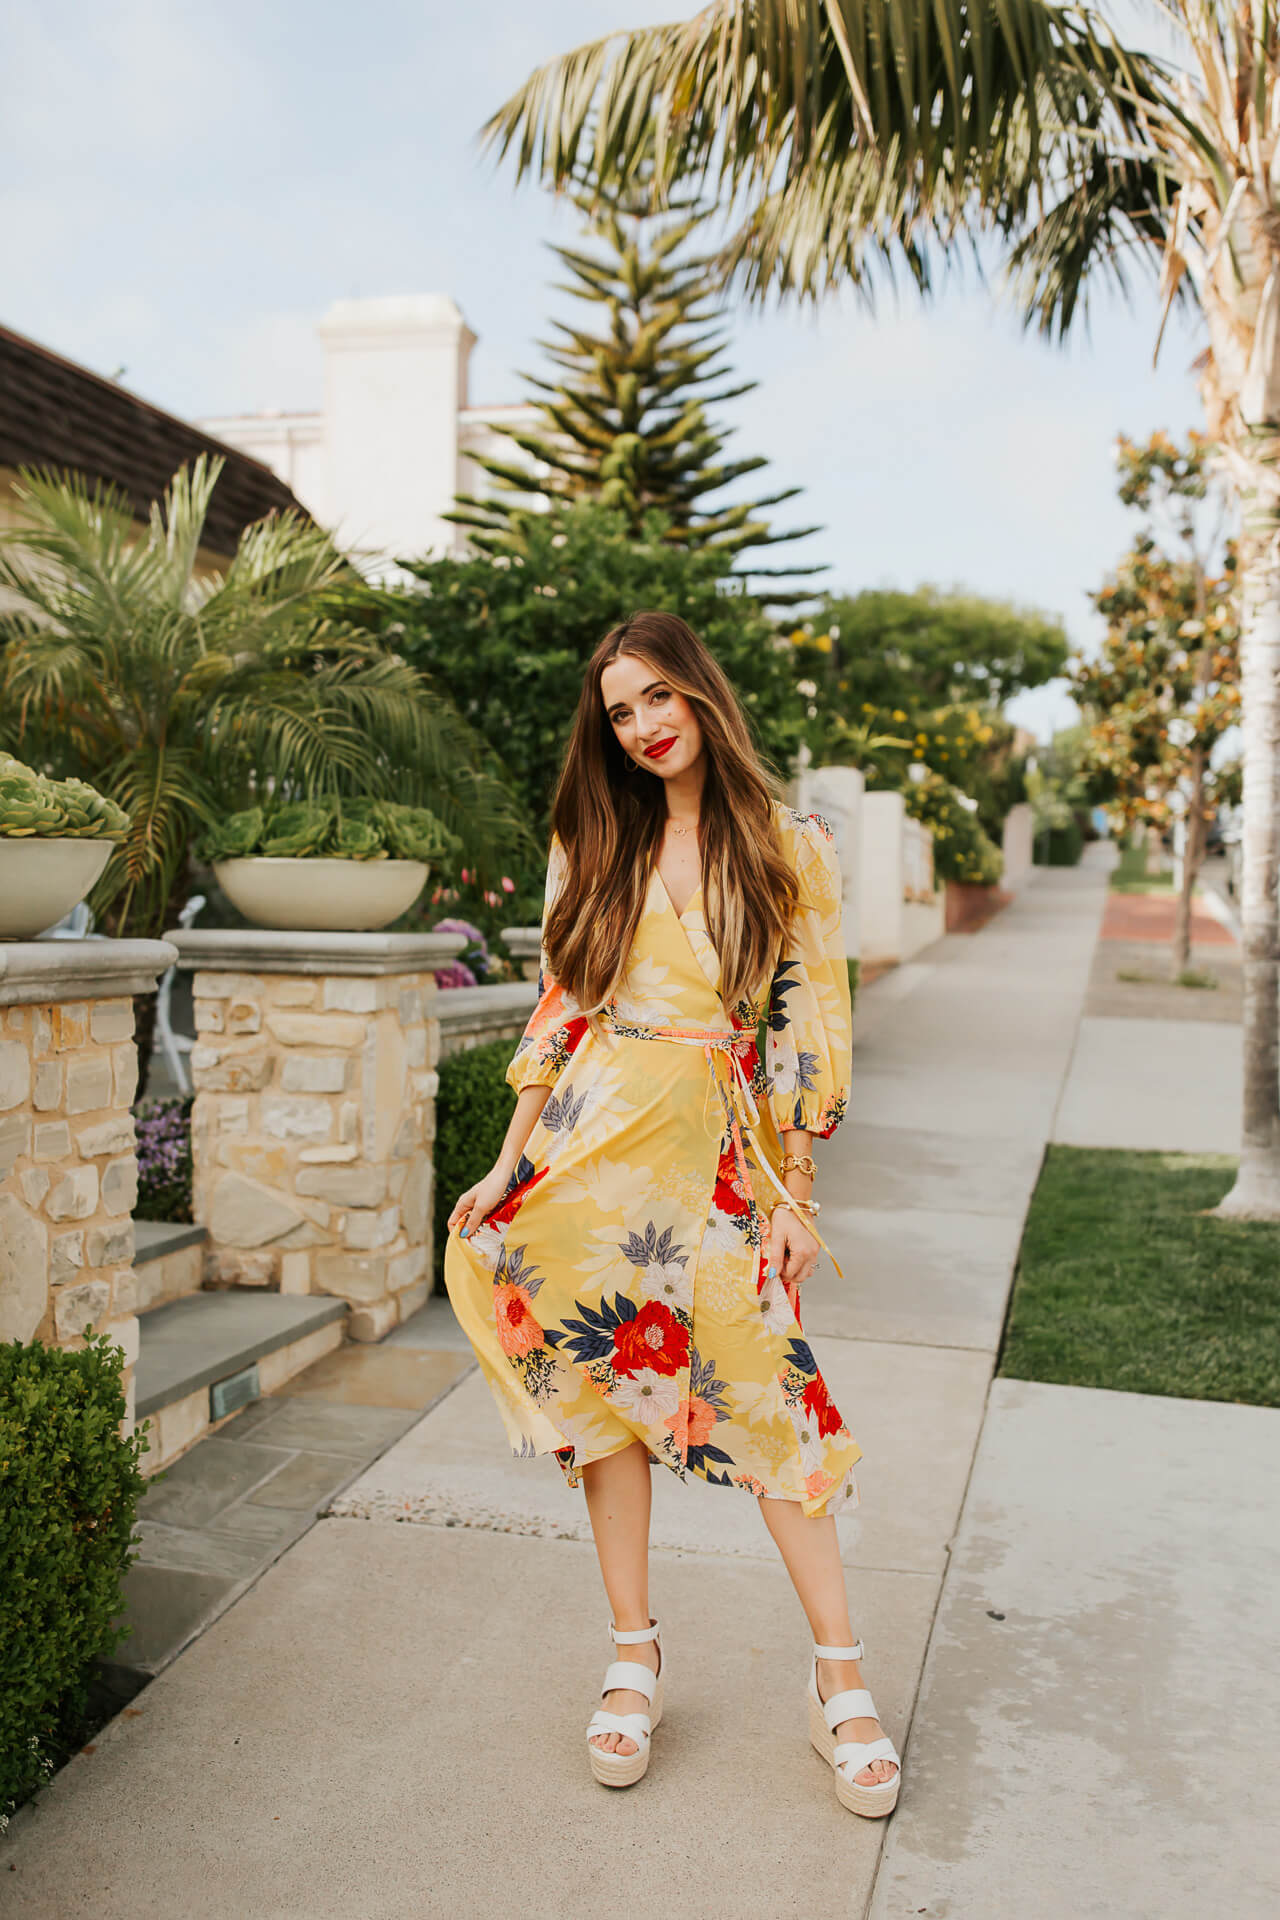 Summer style inspiration and outfit inspiration with wrap dresses. | M Loves M @marmar